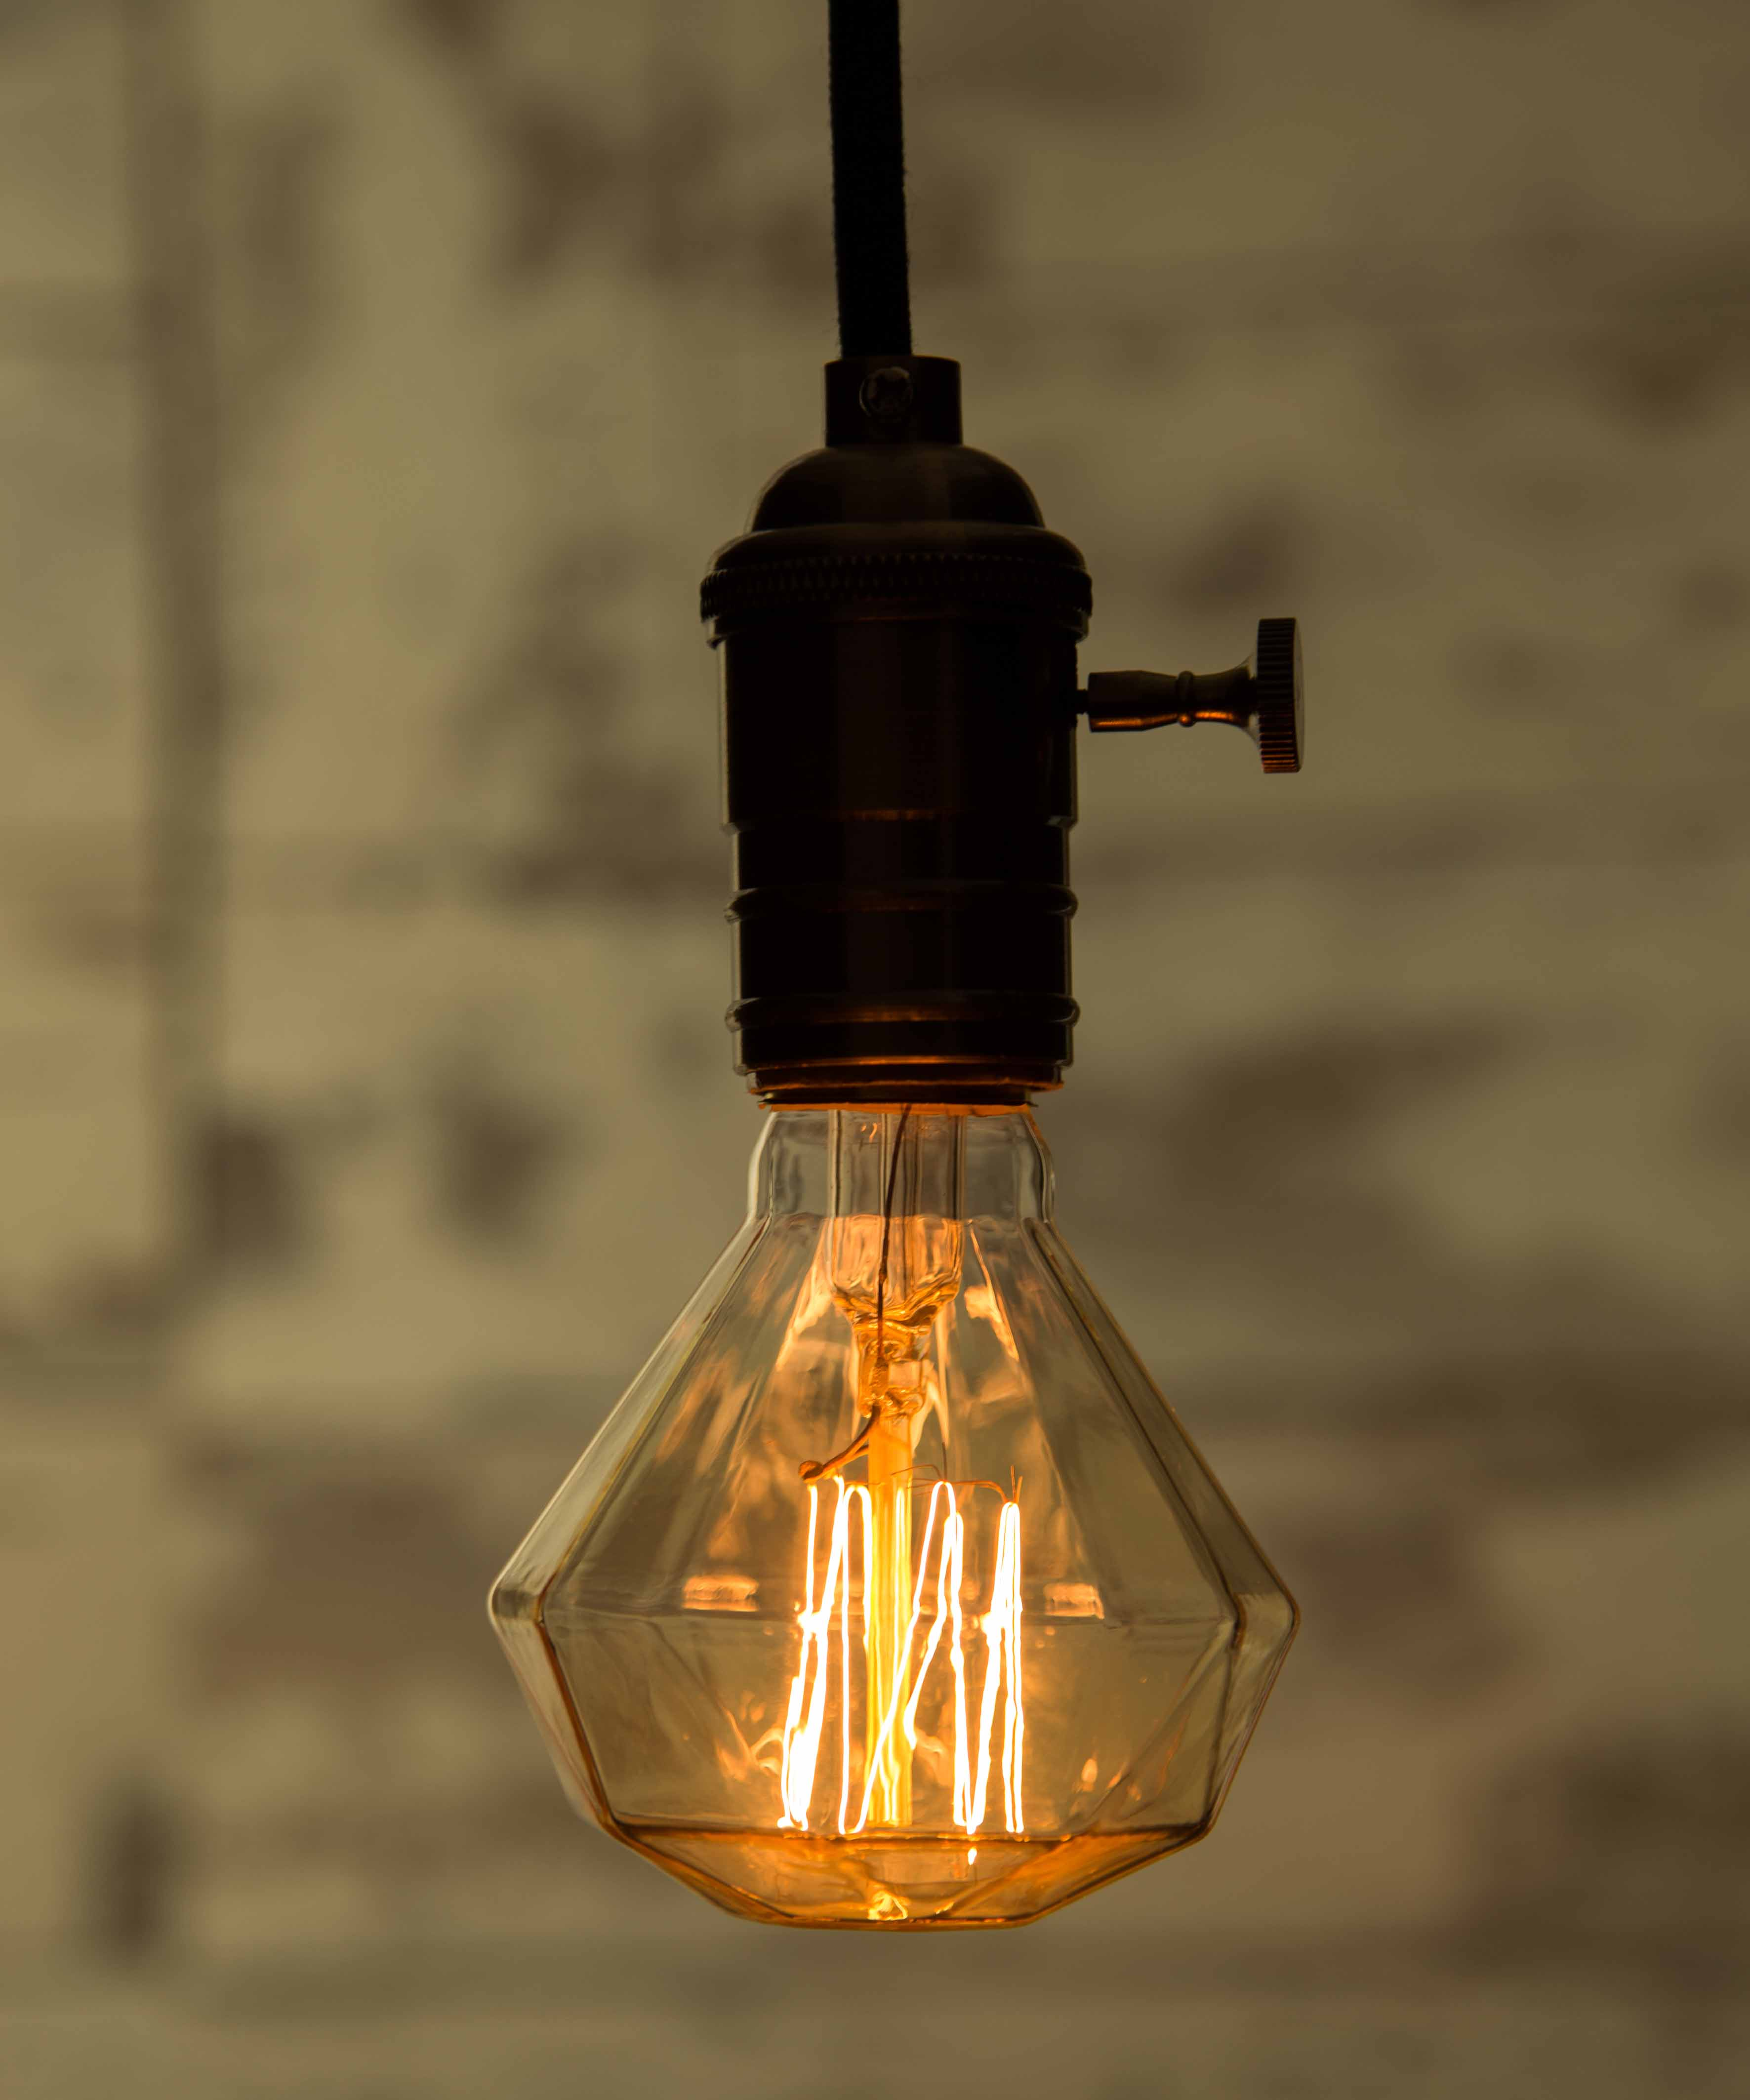 Industrial Looking Light Bulbs Old Fashioned Light Bulb For Classy Industrial Interior